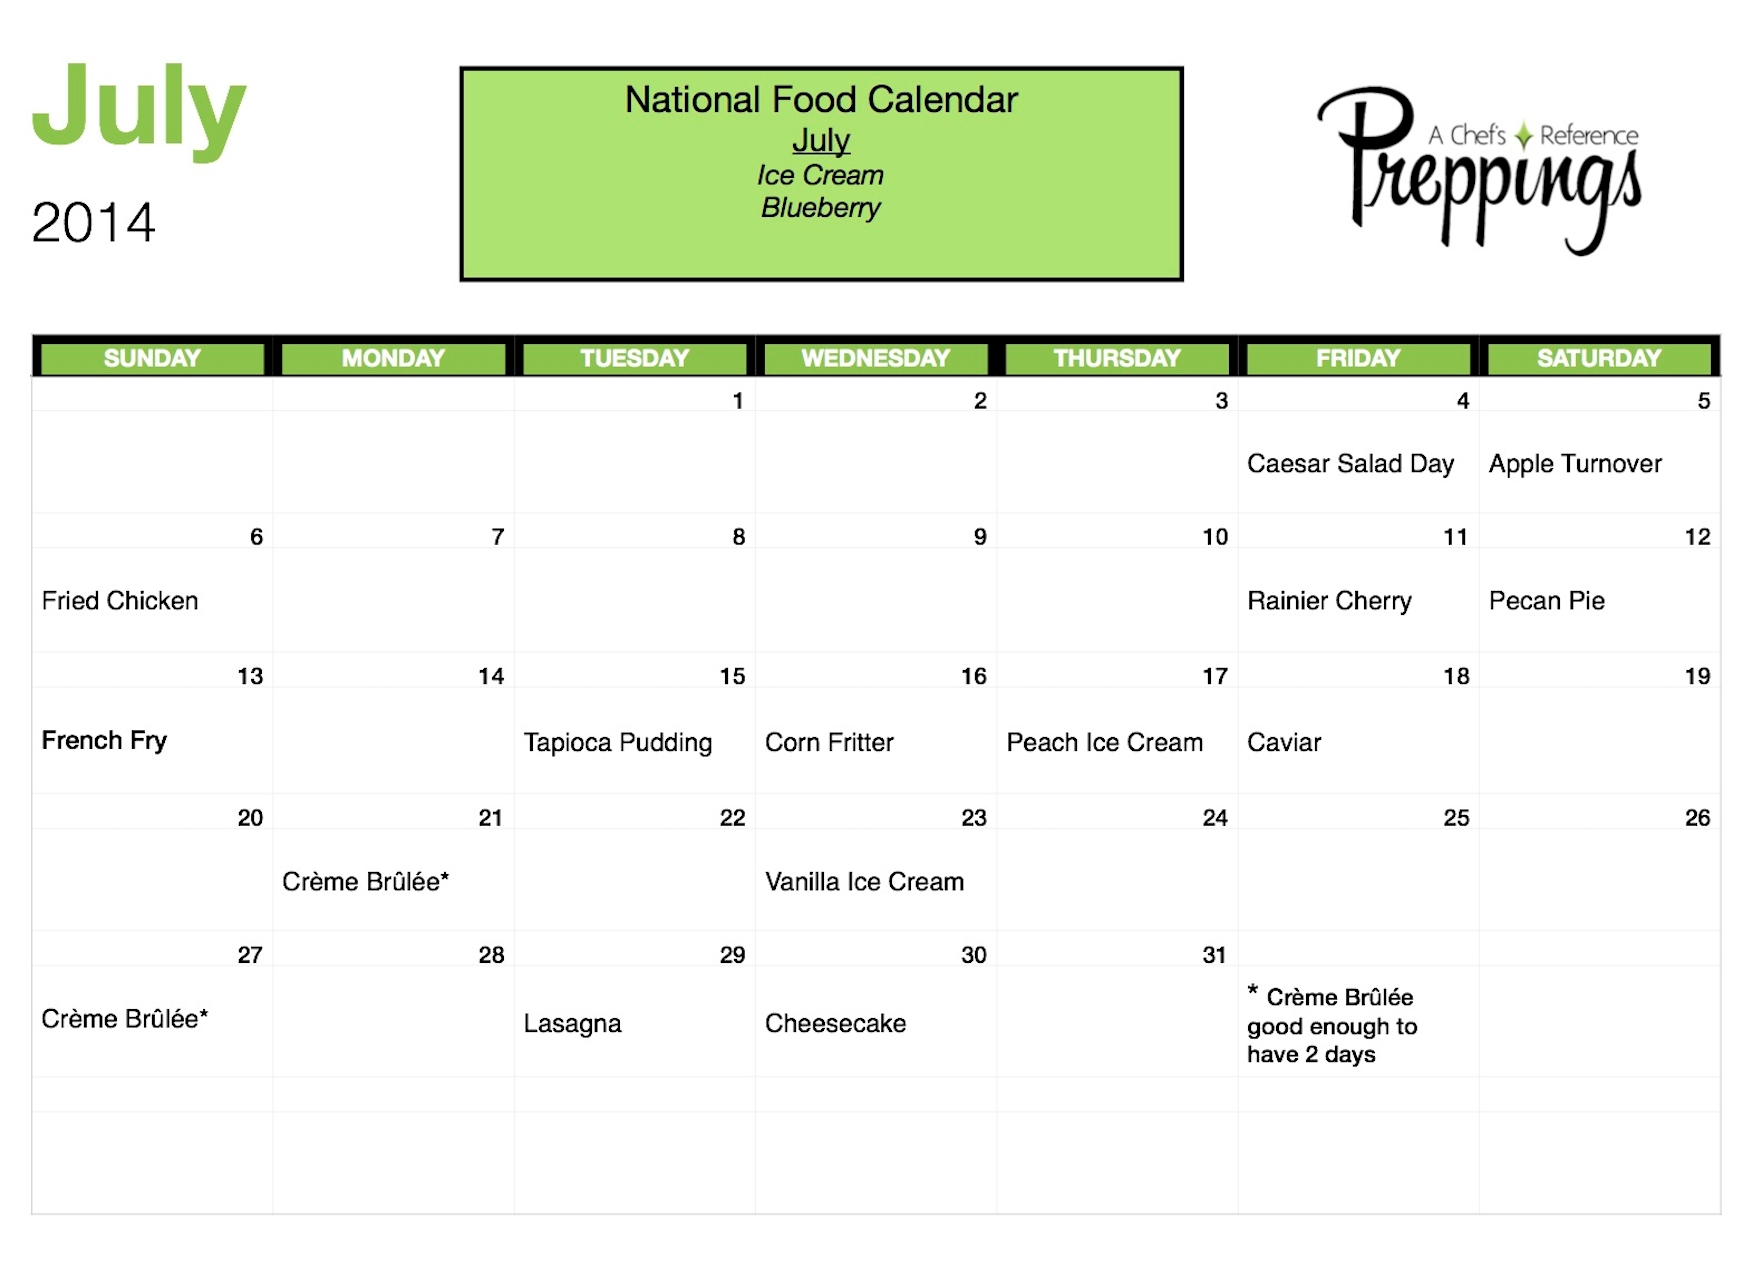 Food Politics Archives - Page 3 Of 3 - Preppings with regard to July National Food Day Calendar